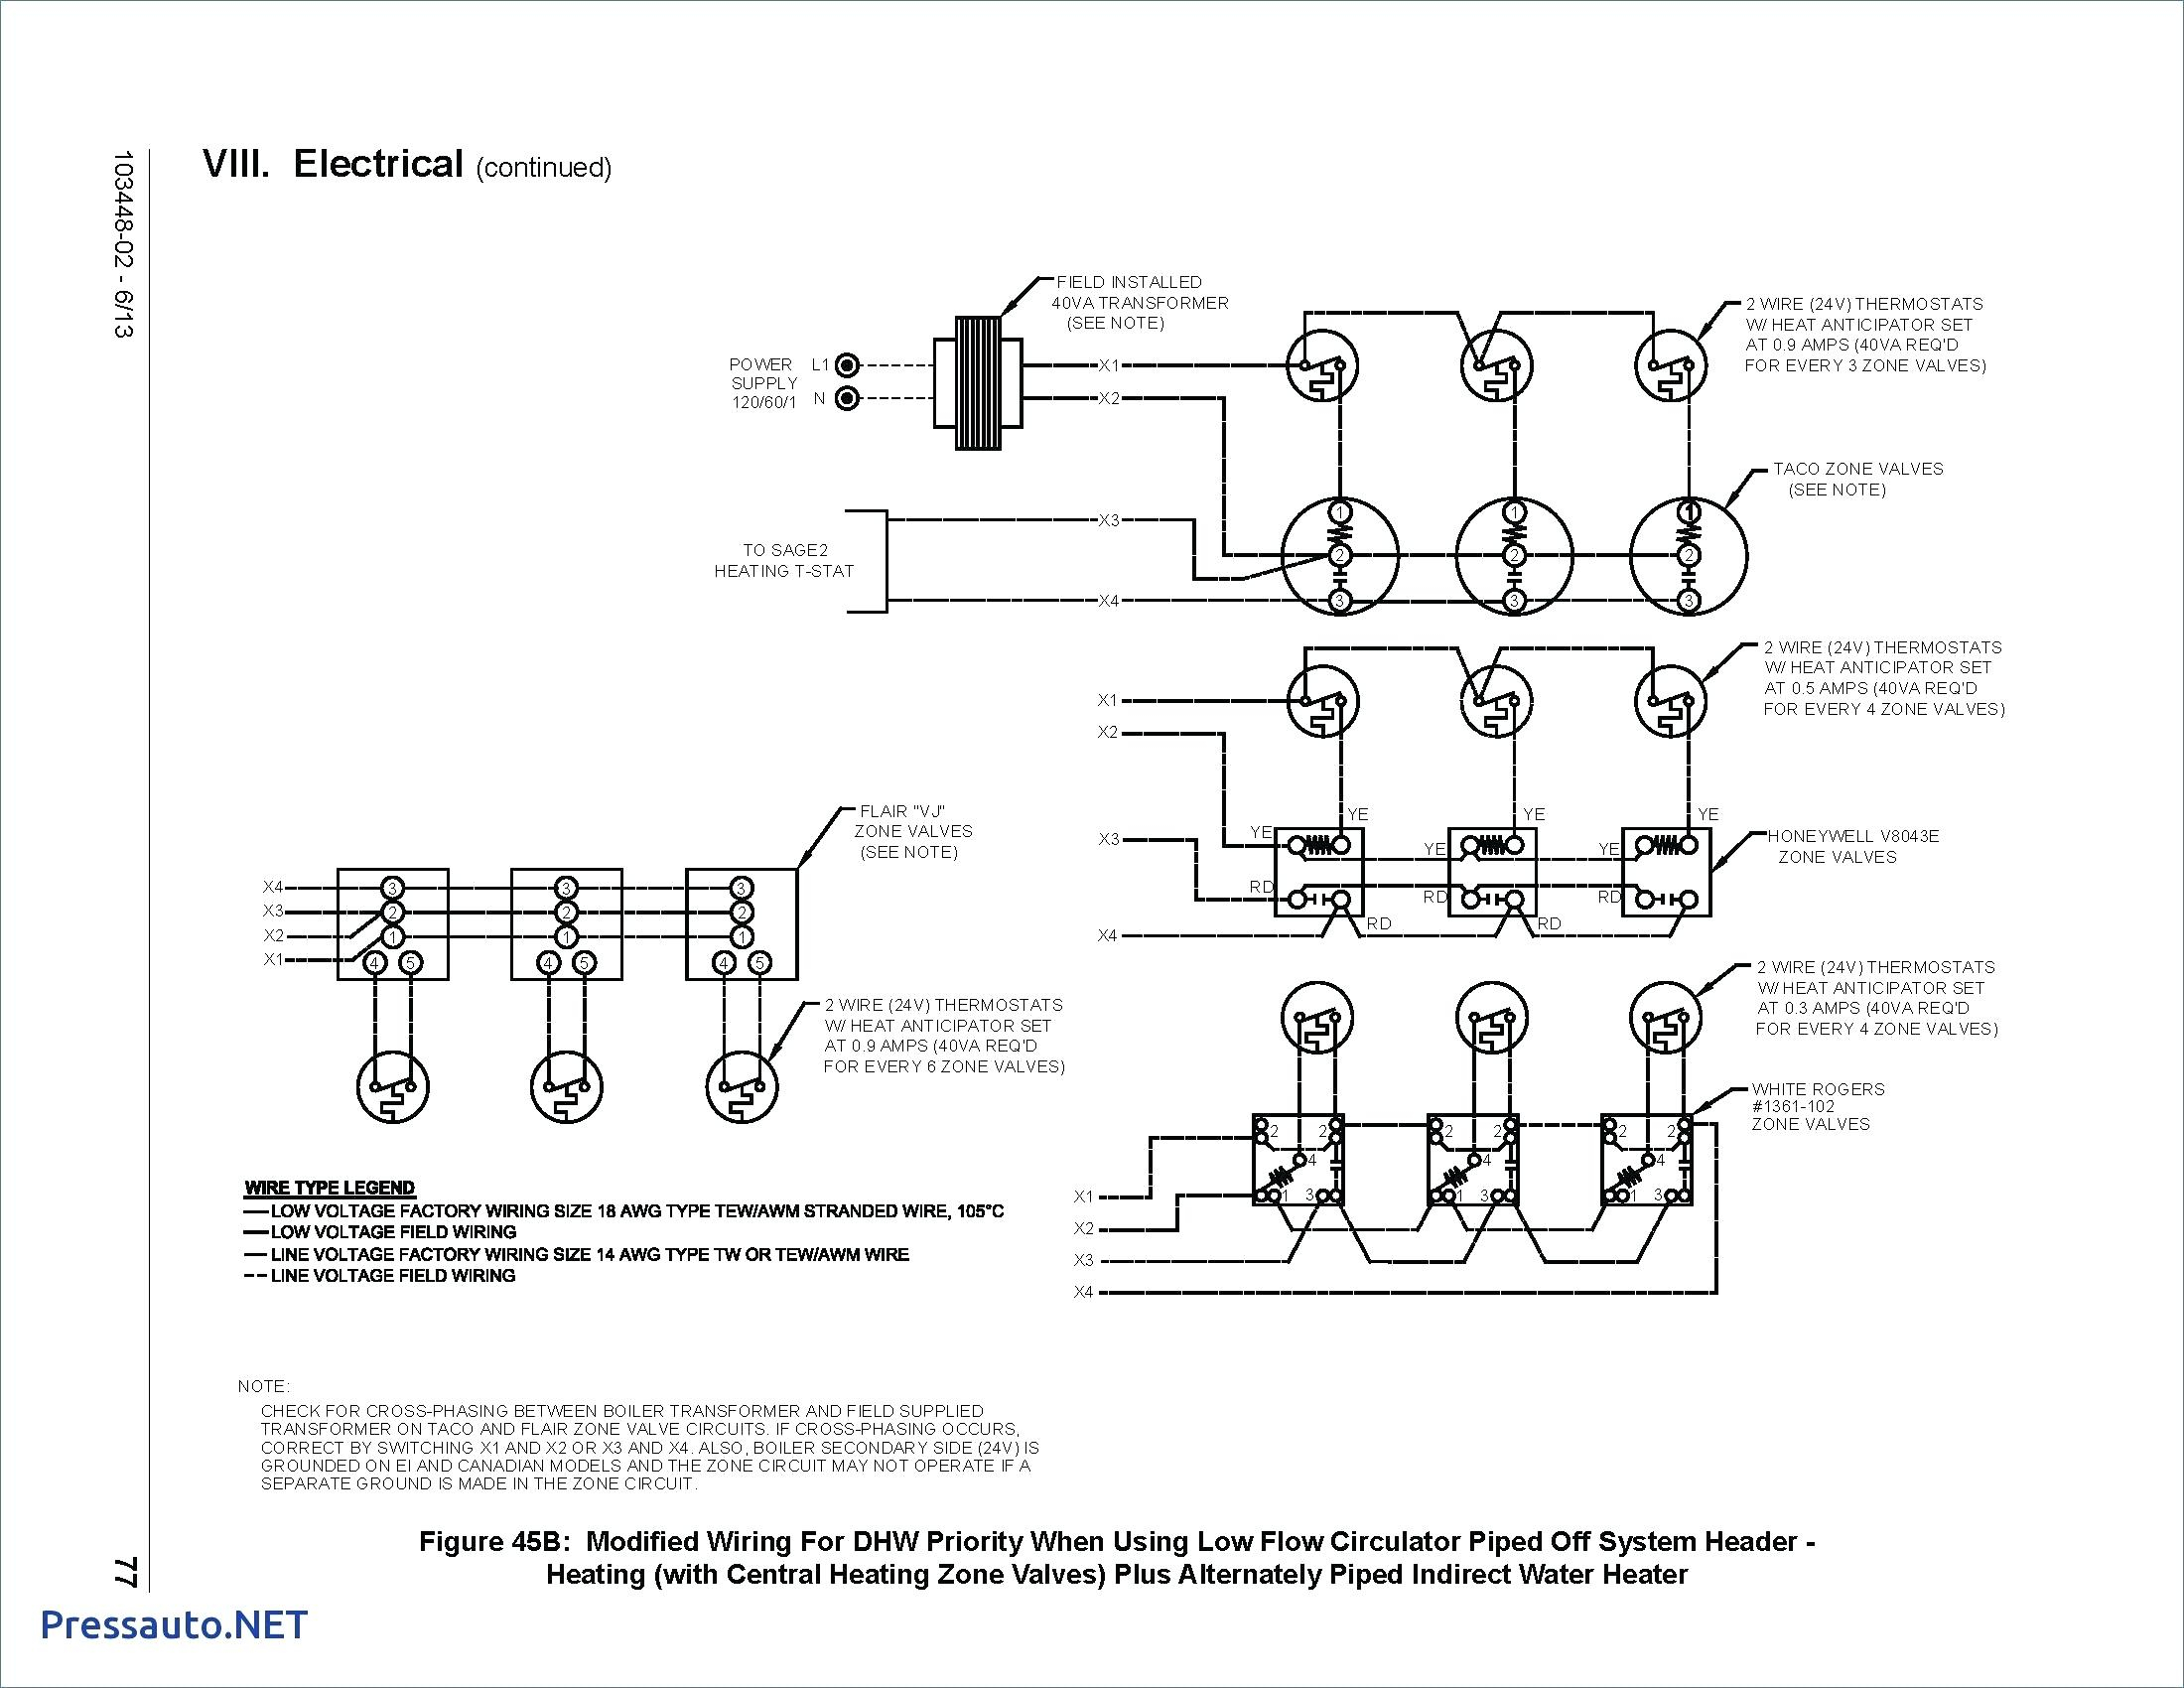 taco 571 zone valve wiring diagram Download-Taco 571 Zone Valve Wiring Diagram Boiler Pump And Mixing 555 102 Best 20-m